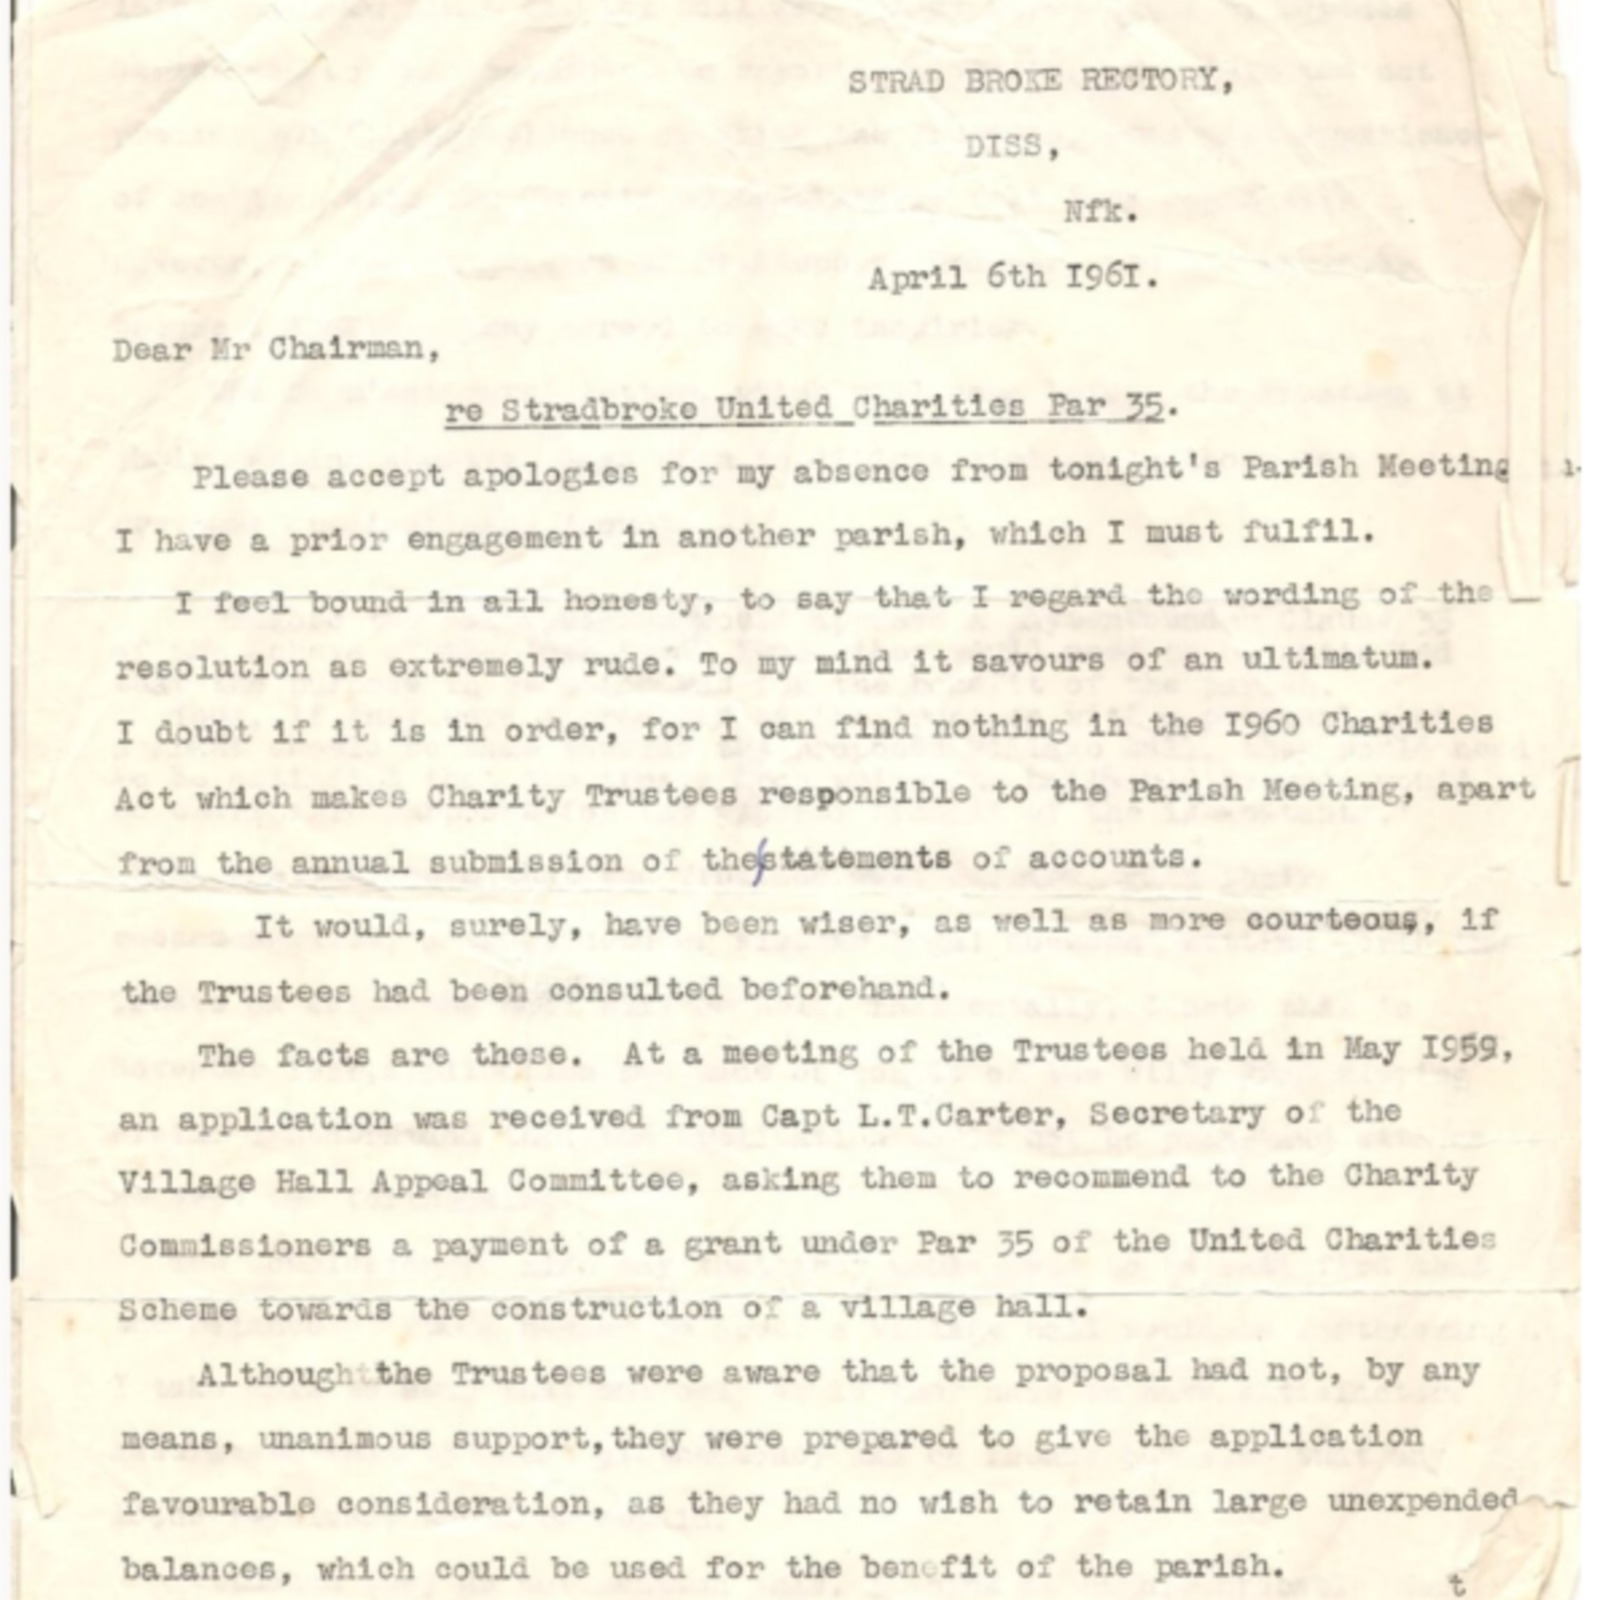 letter vicar and trust 1961.pdf